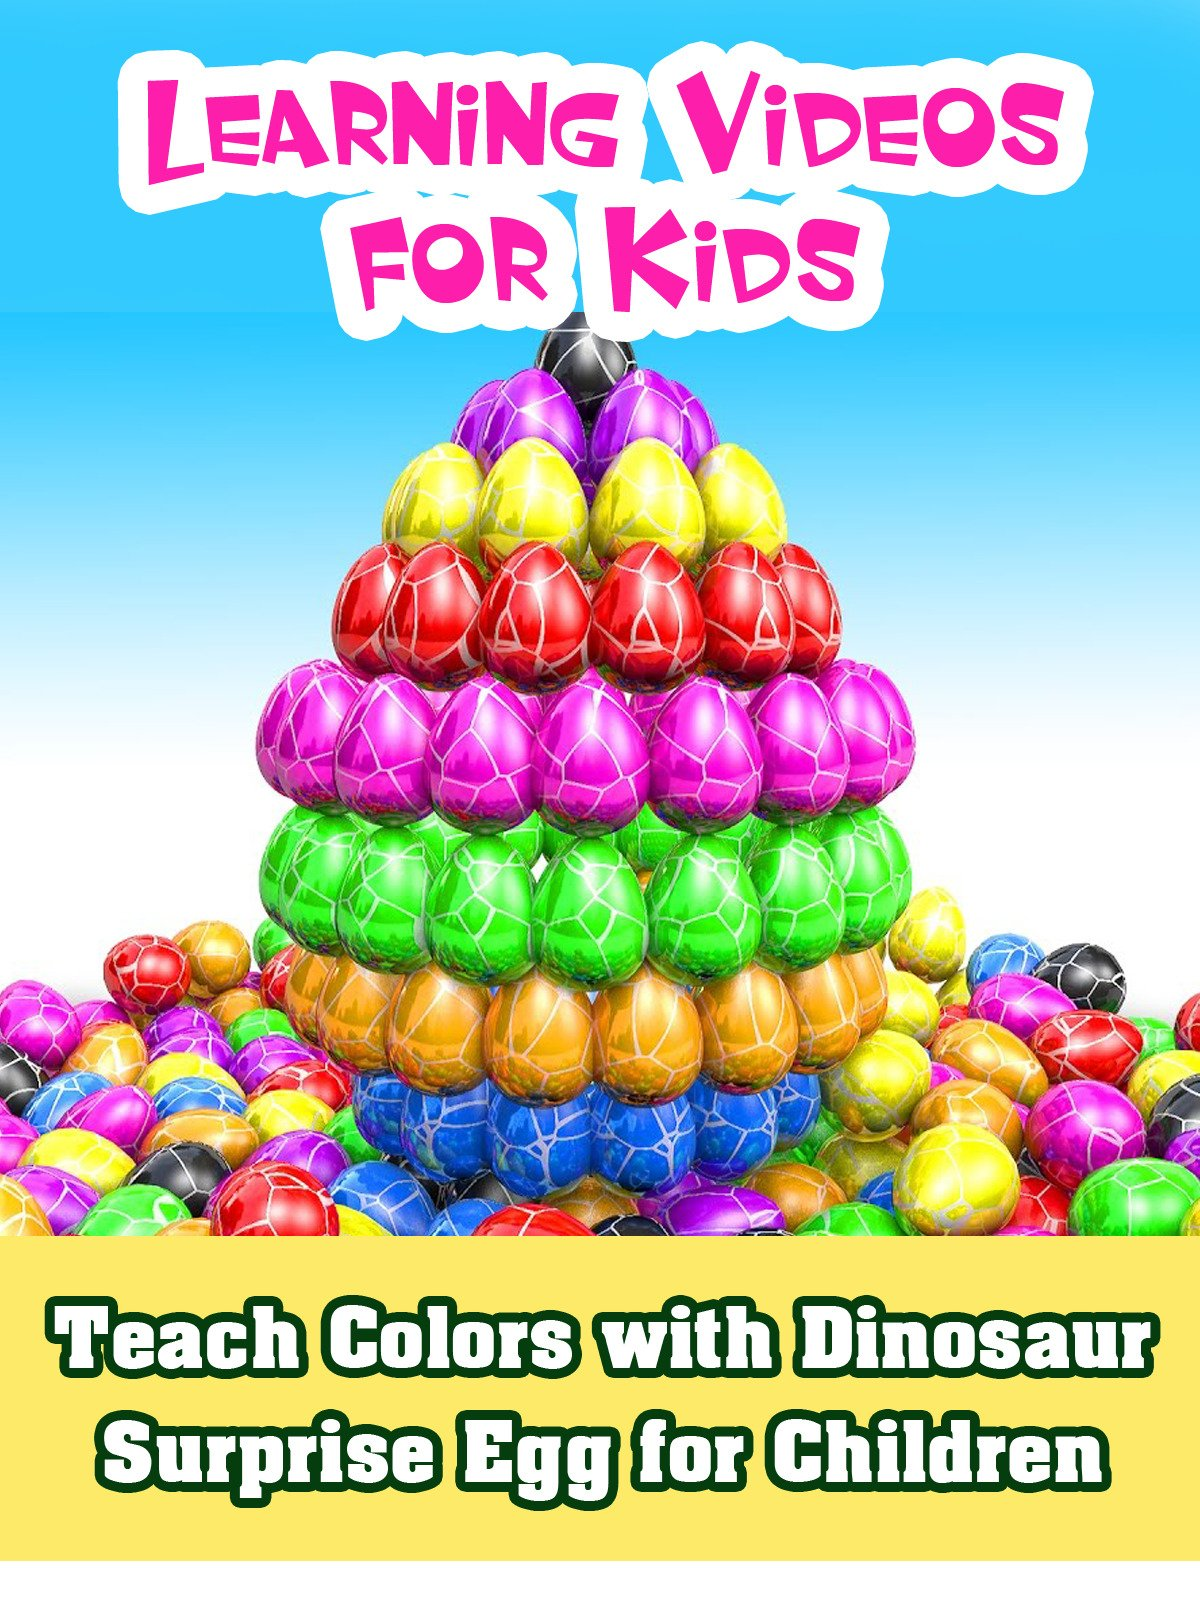 Teach Colors with Dinosaur Surprise Egg for Children